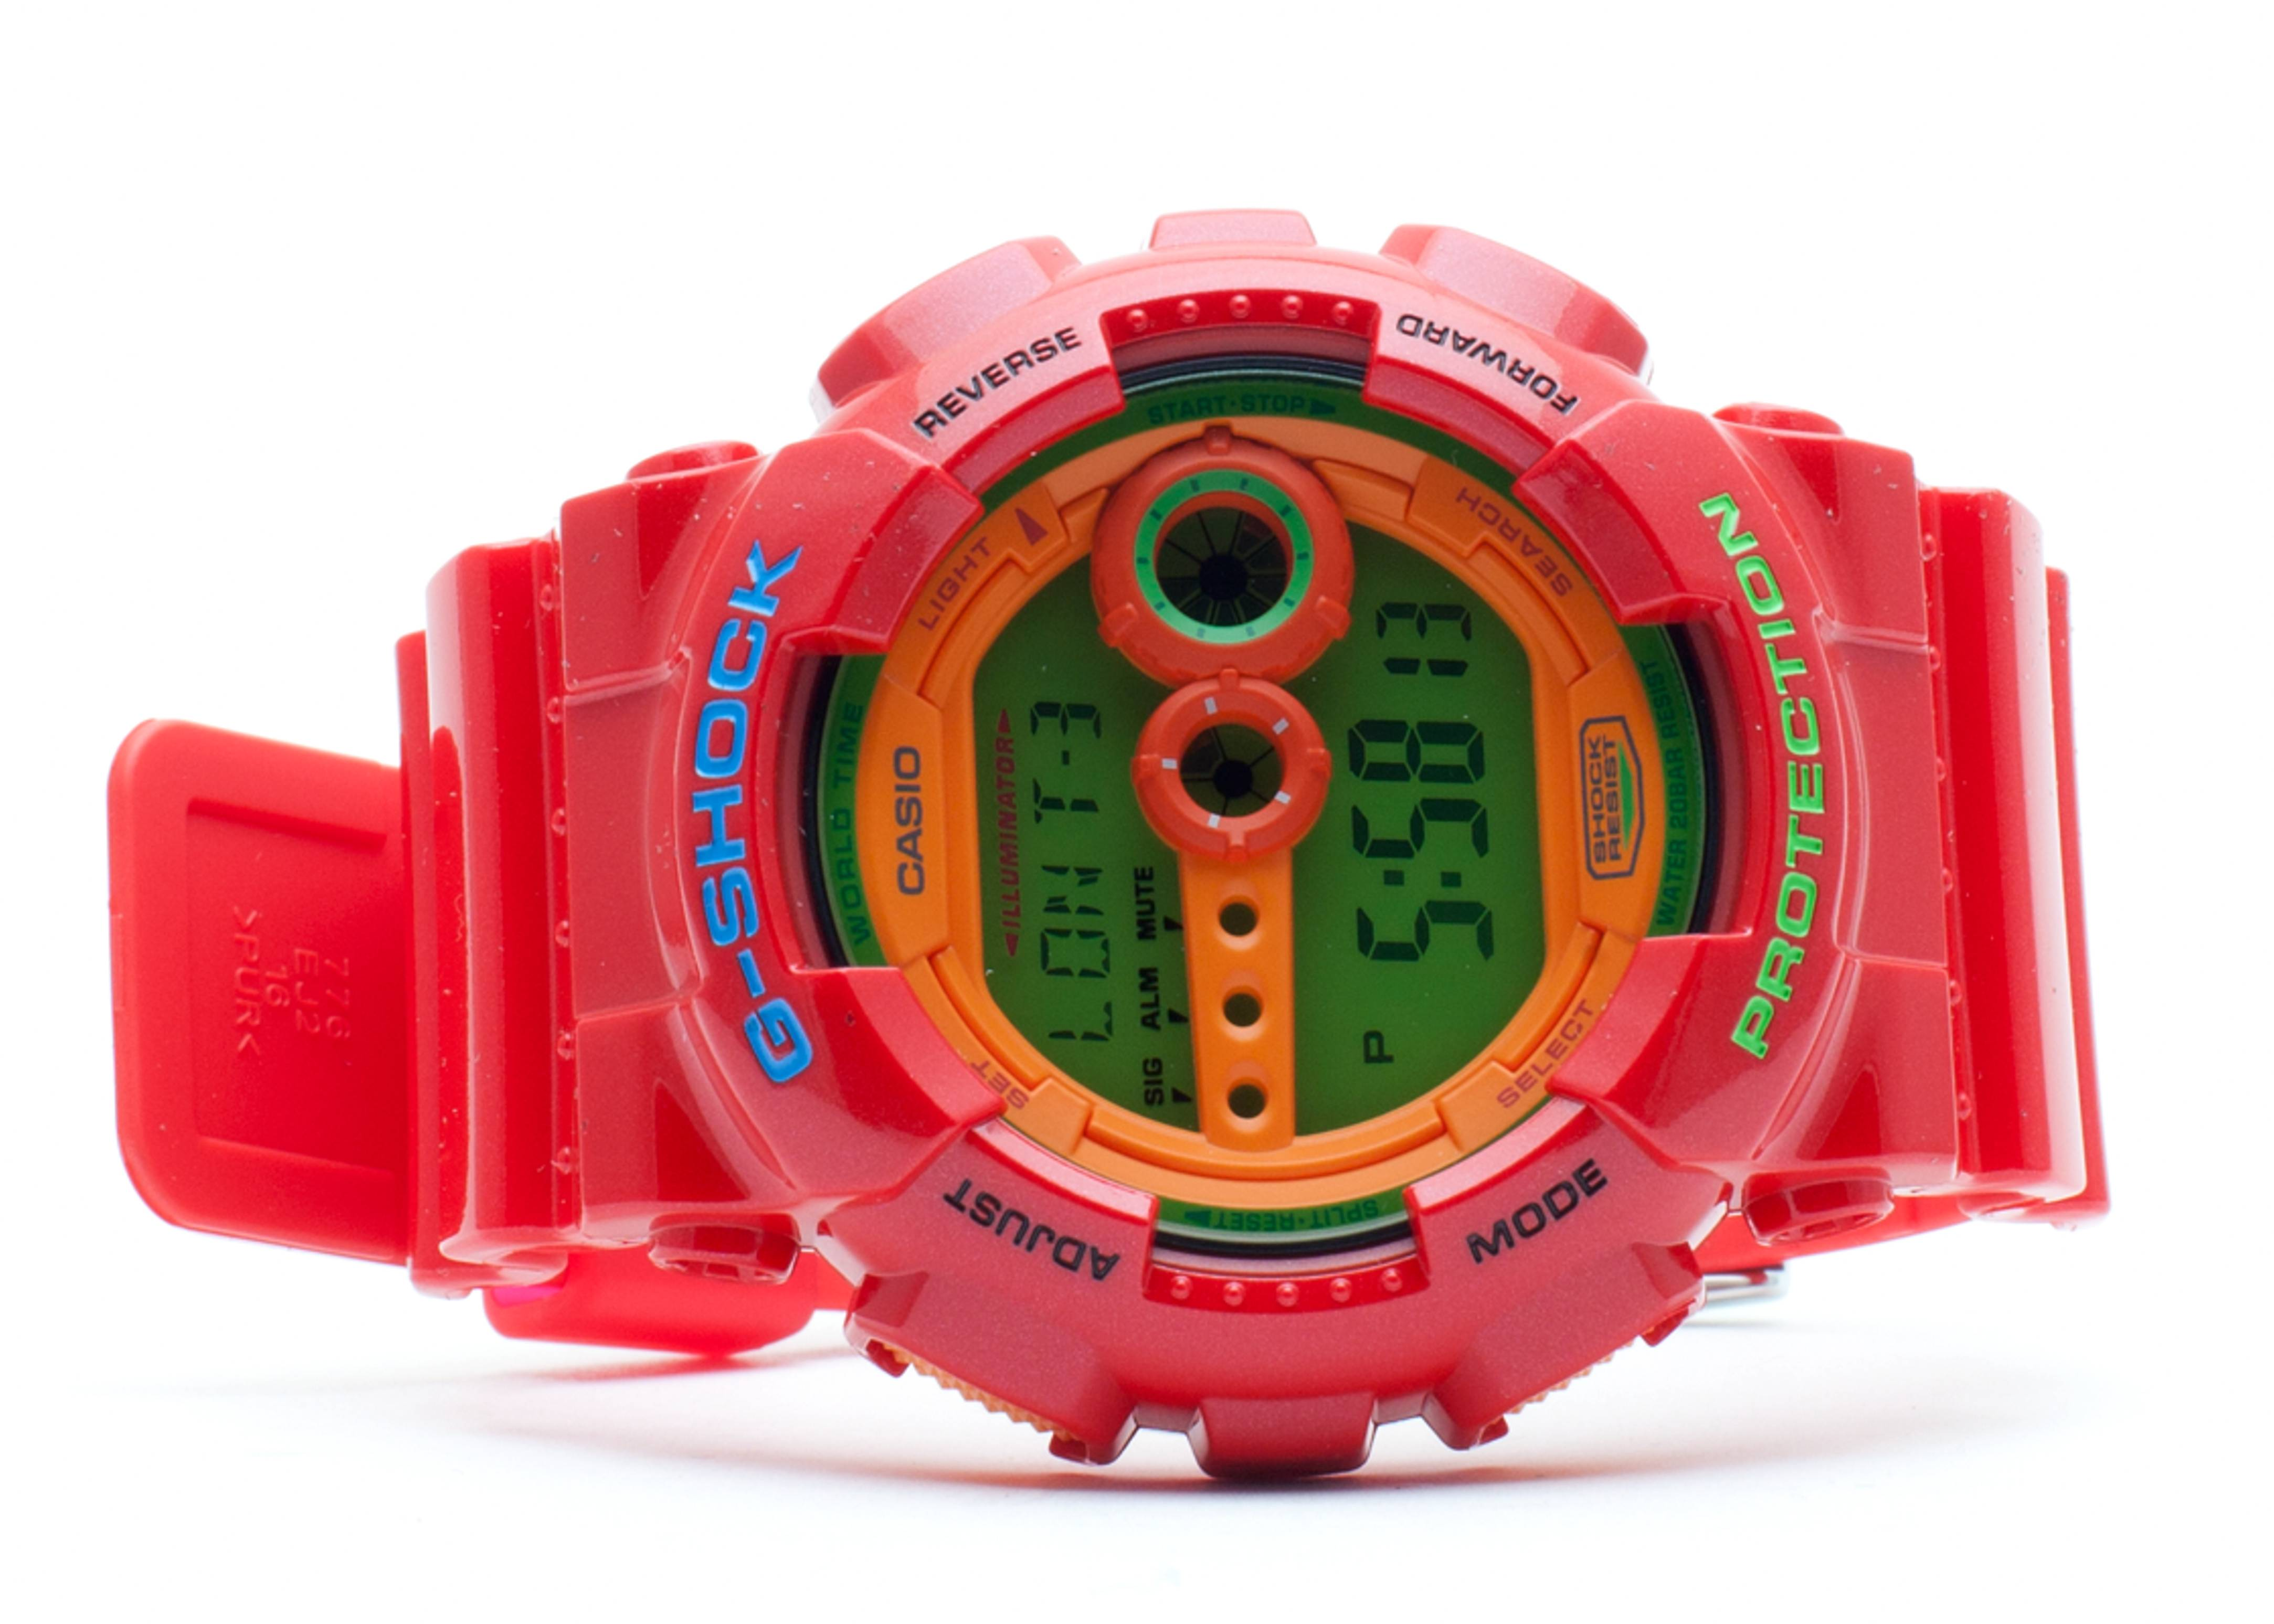 g-shock gd100hc4cr